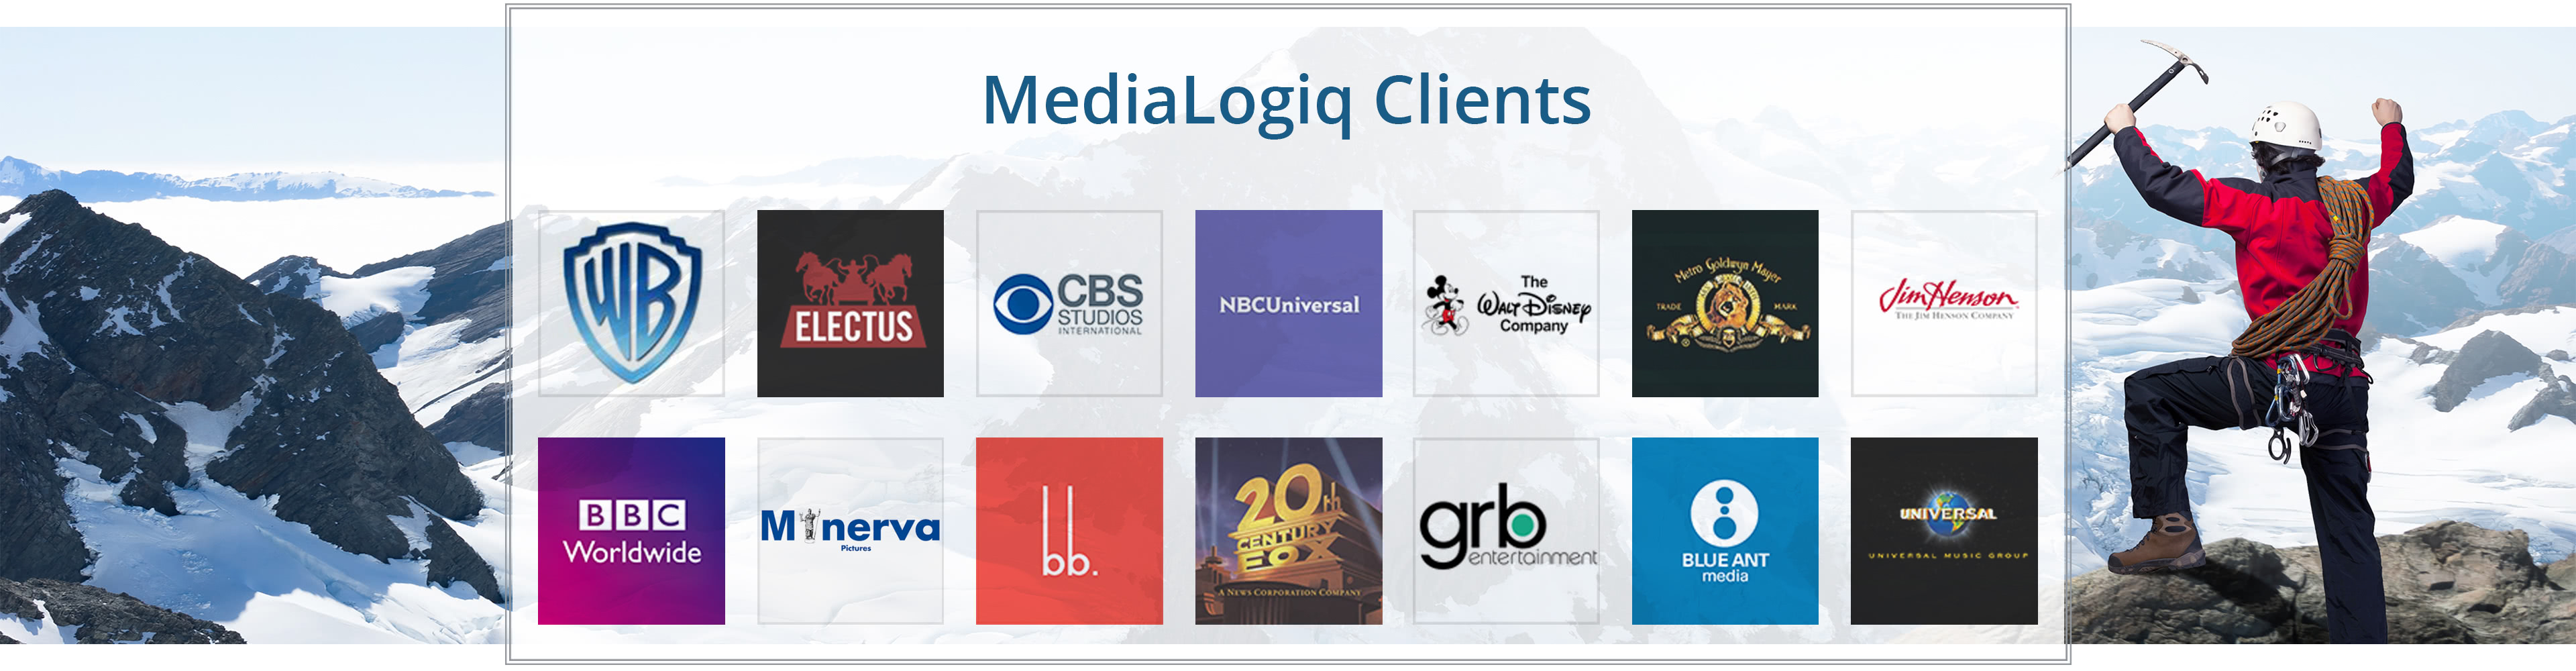 MediaLogiq Systems clients that use MediaRights and ITVR